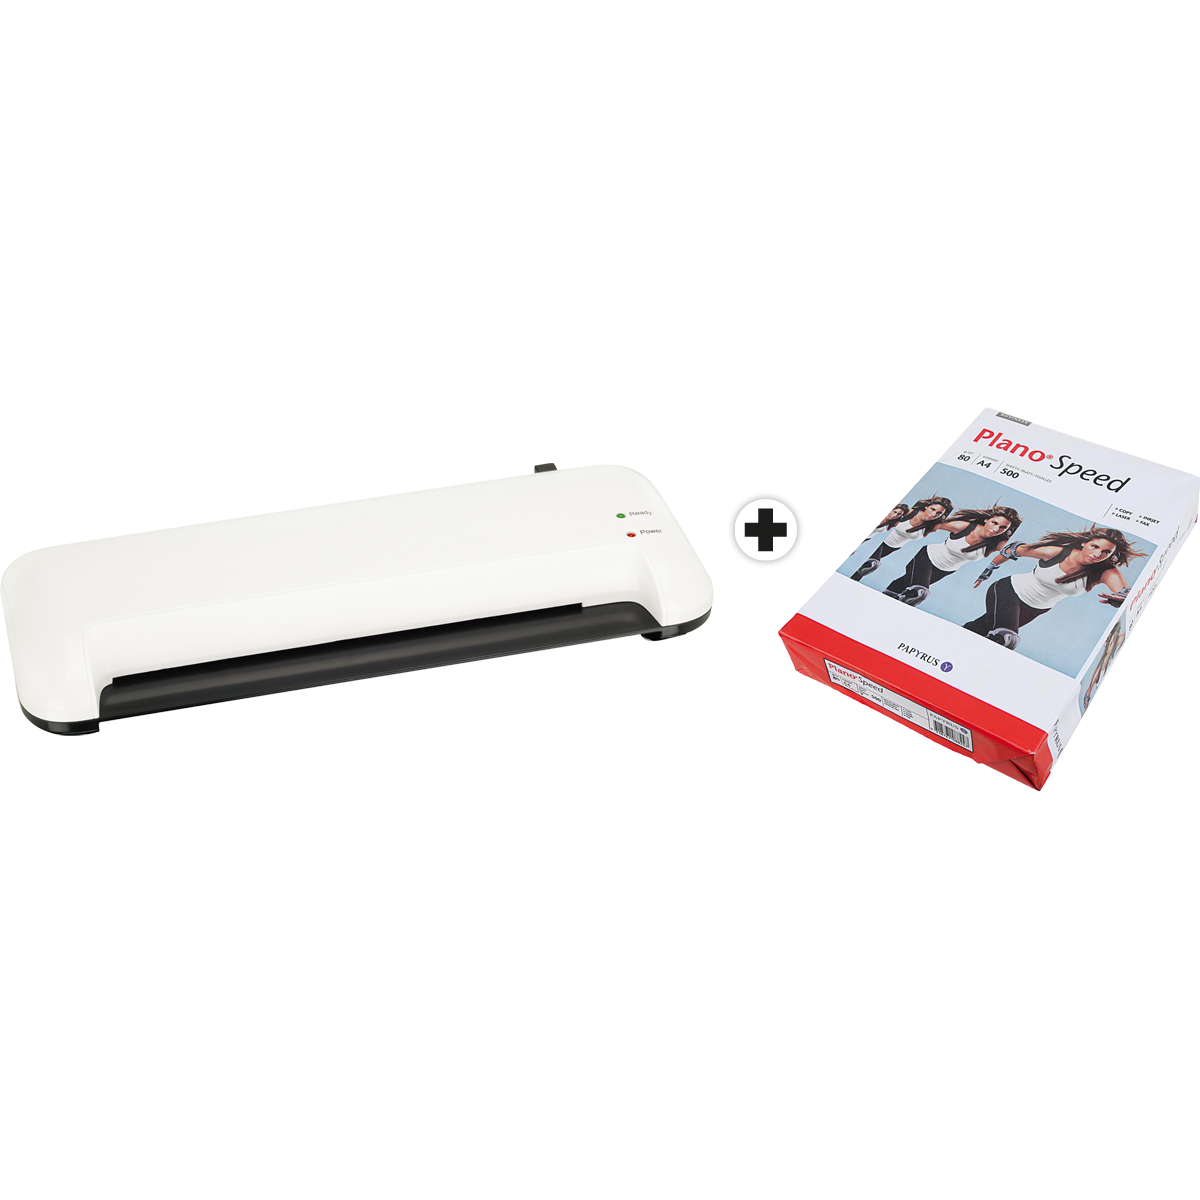 isy ioe 700 laminator a4 230 mm weiss papyrus. Black Bedroom Furniture Sets. Home Design Ideas